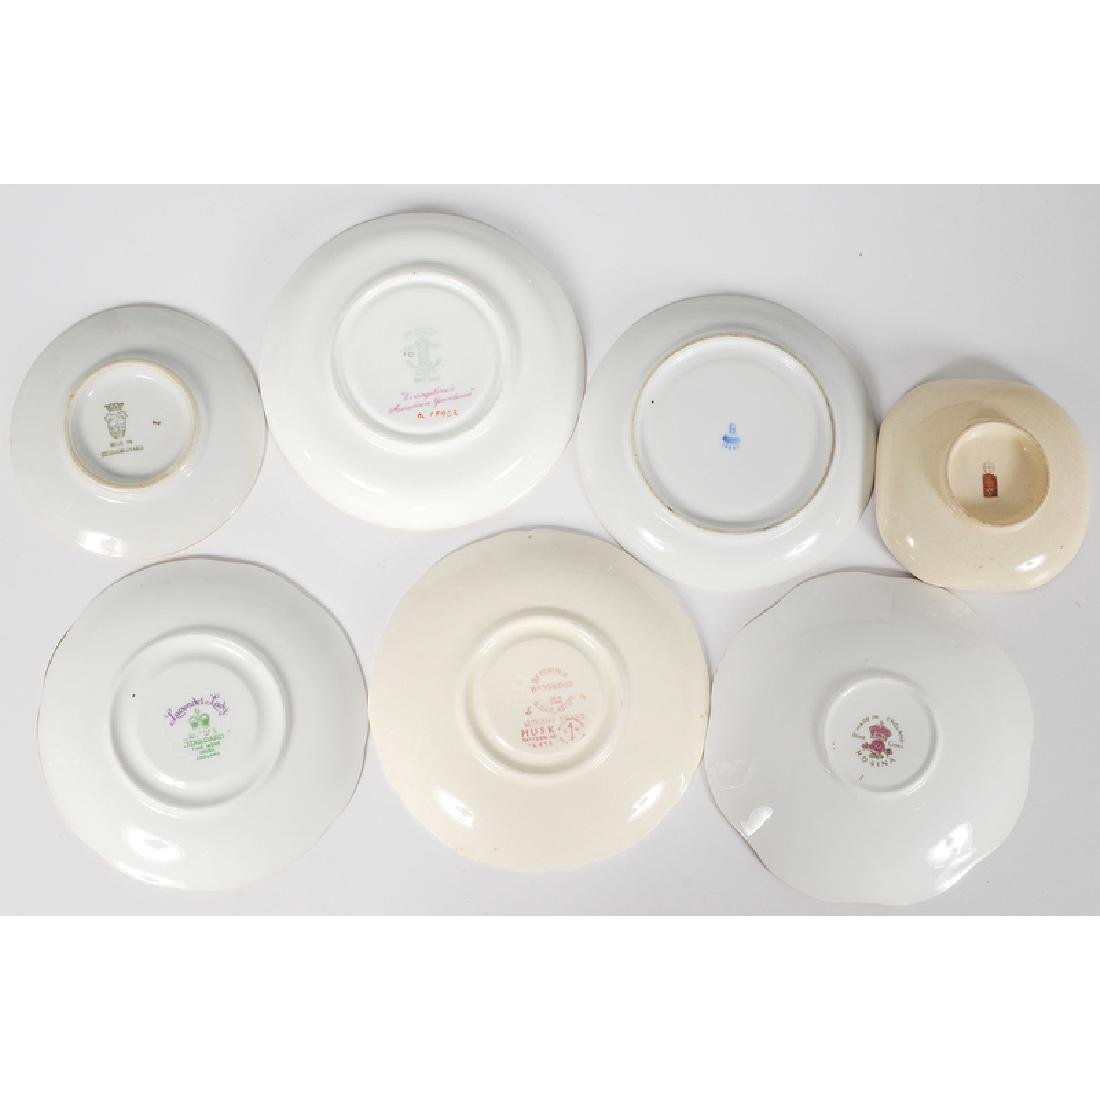 Assorted Collection of Teacups and Saucers - 5